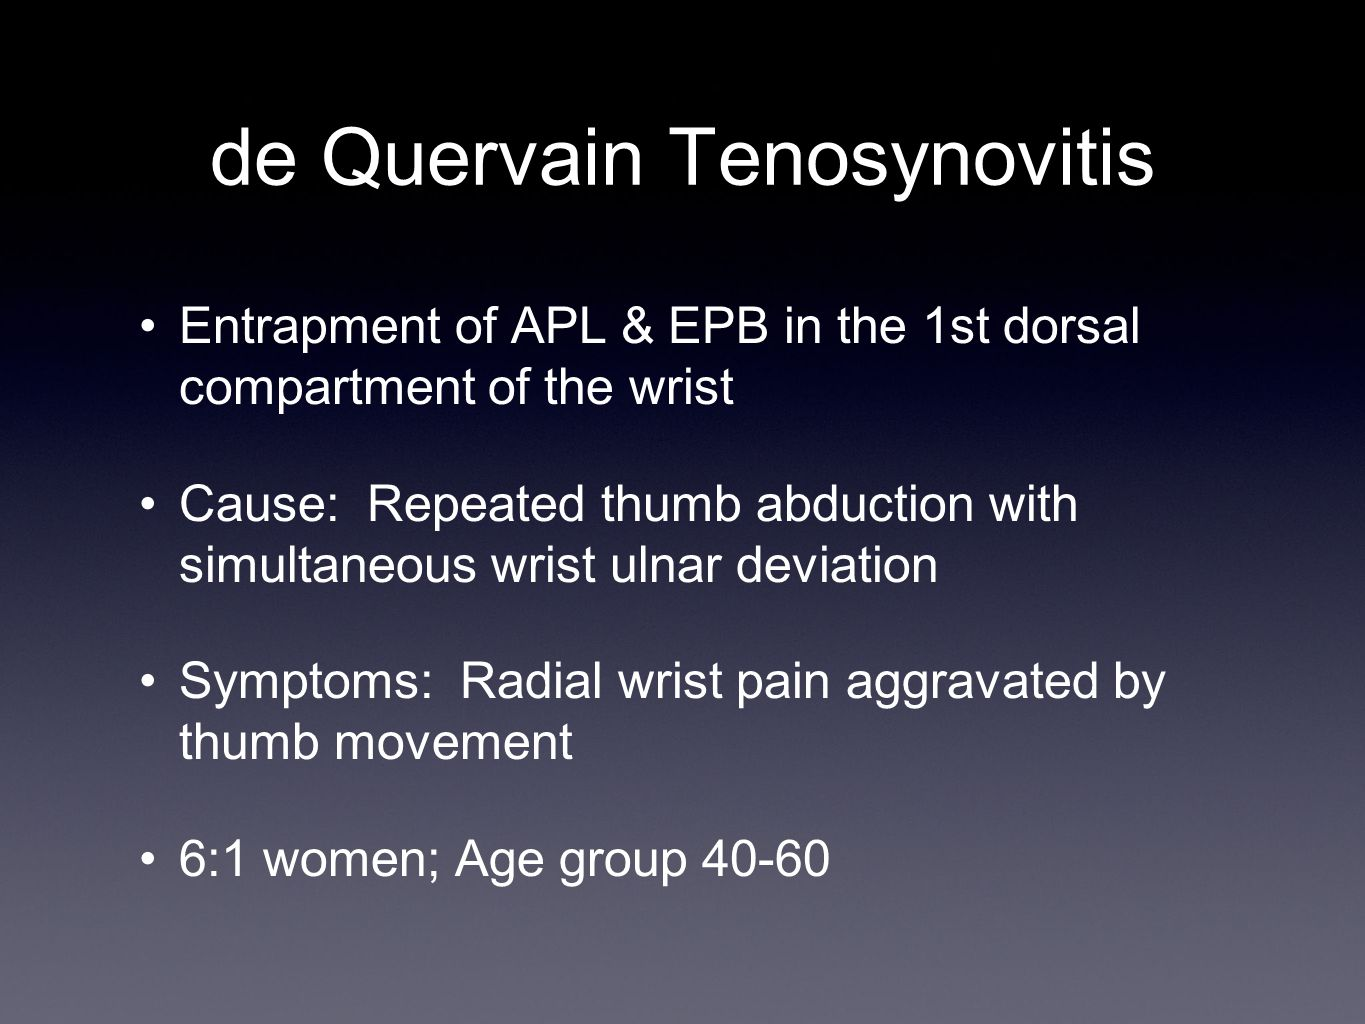 Thumb Radial Collateral Ligament Injury Partial Rupture Hand-based thumb spica splint for 6 weeks AROM last 2 weeks Resisted thumb activity after 3 months Aching pain can last > 6 months Complete Rupture Operative Repair